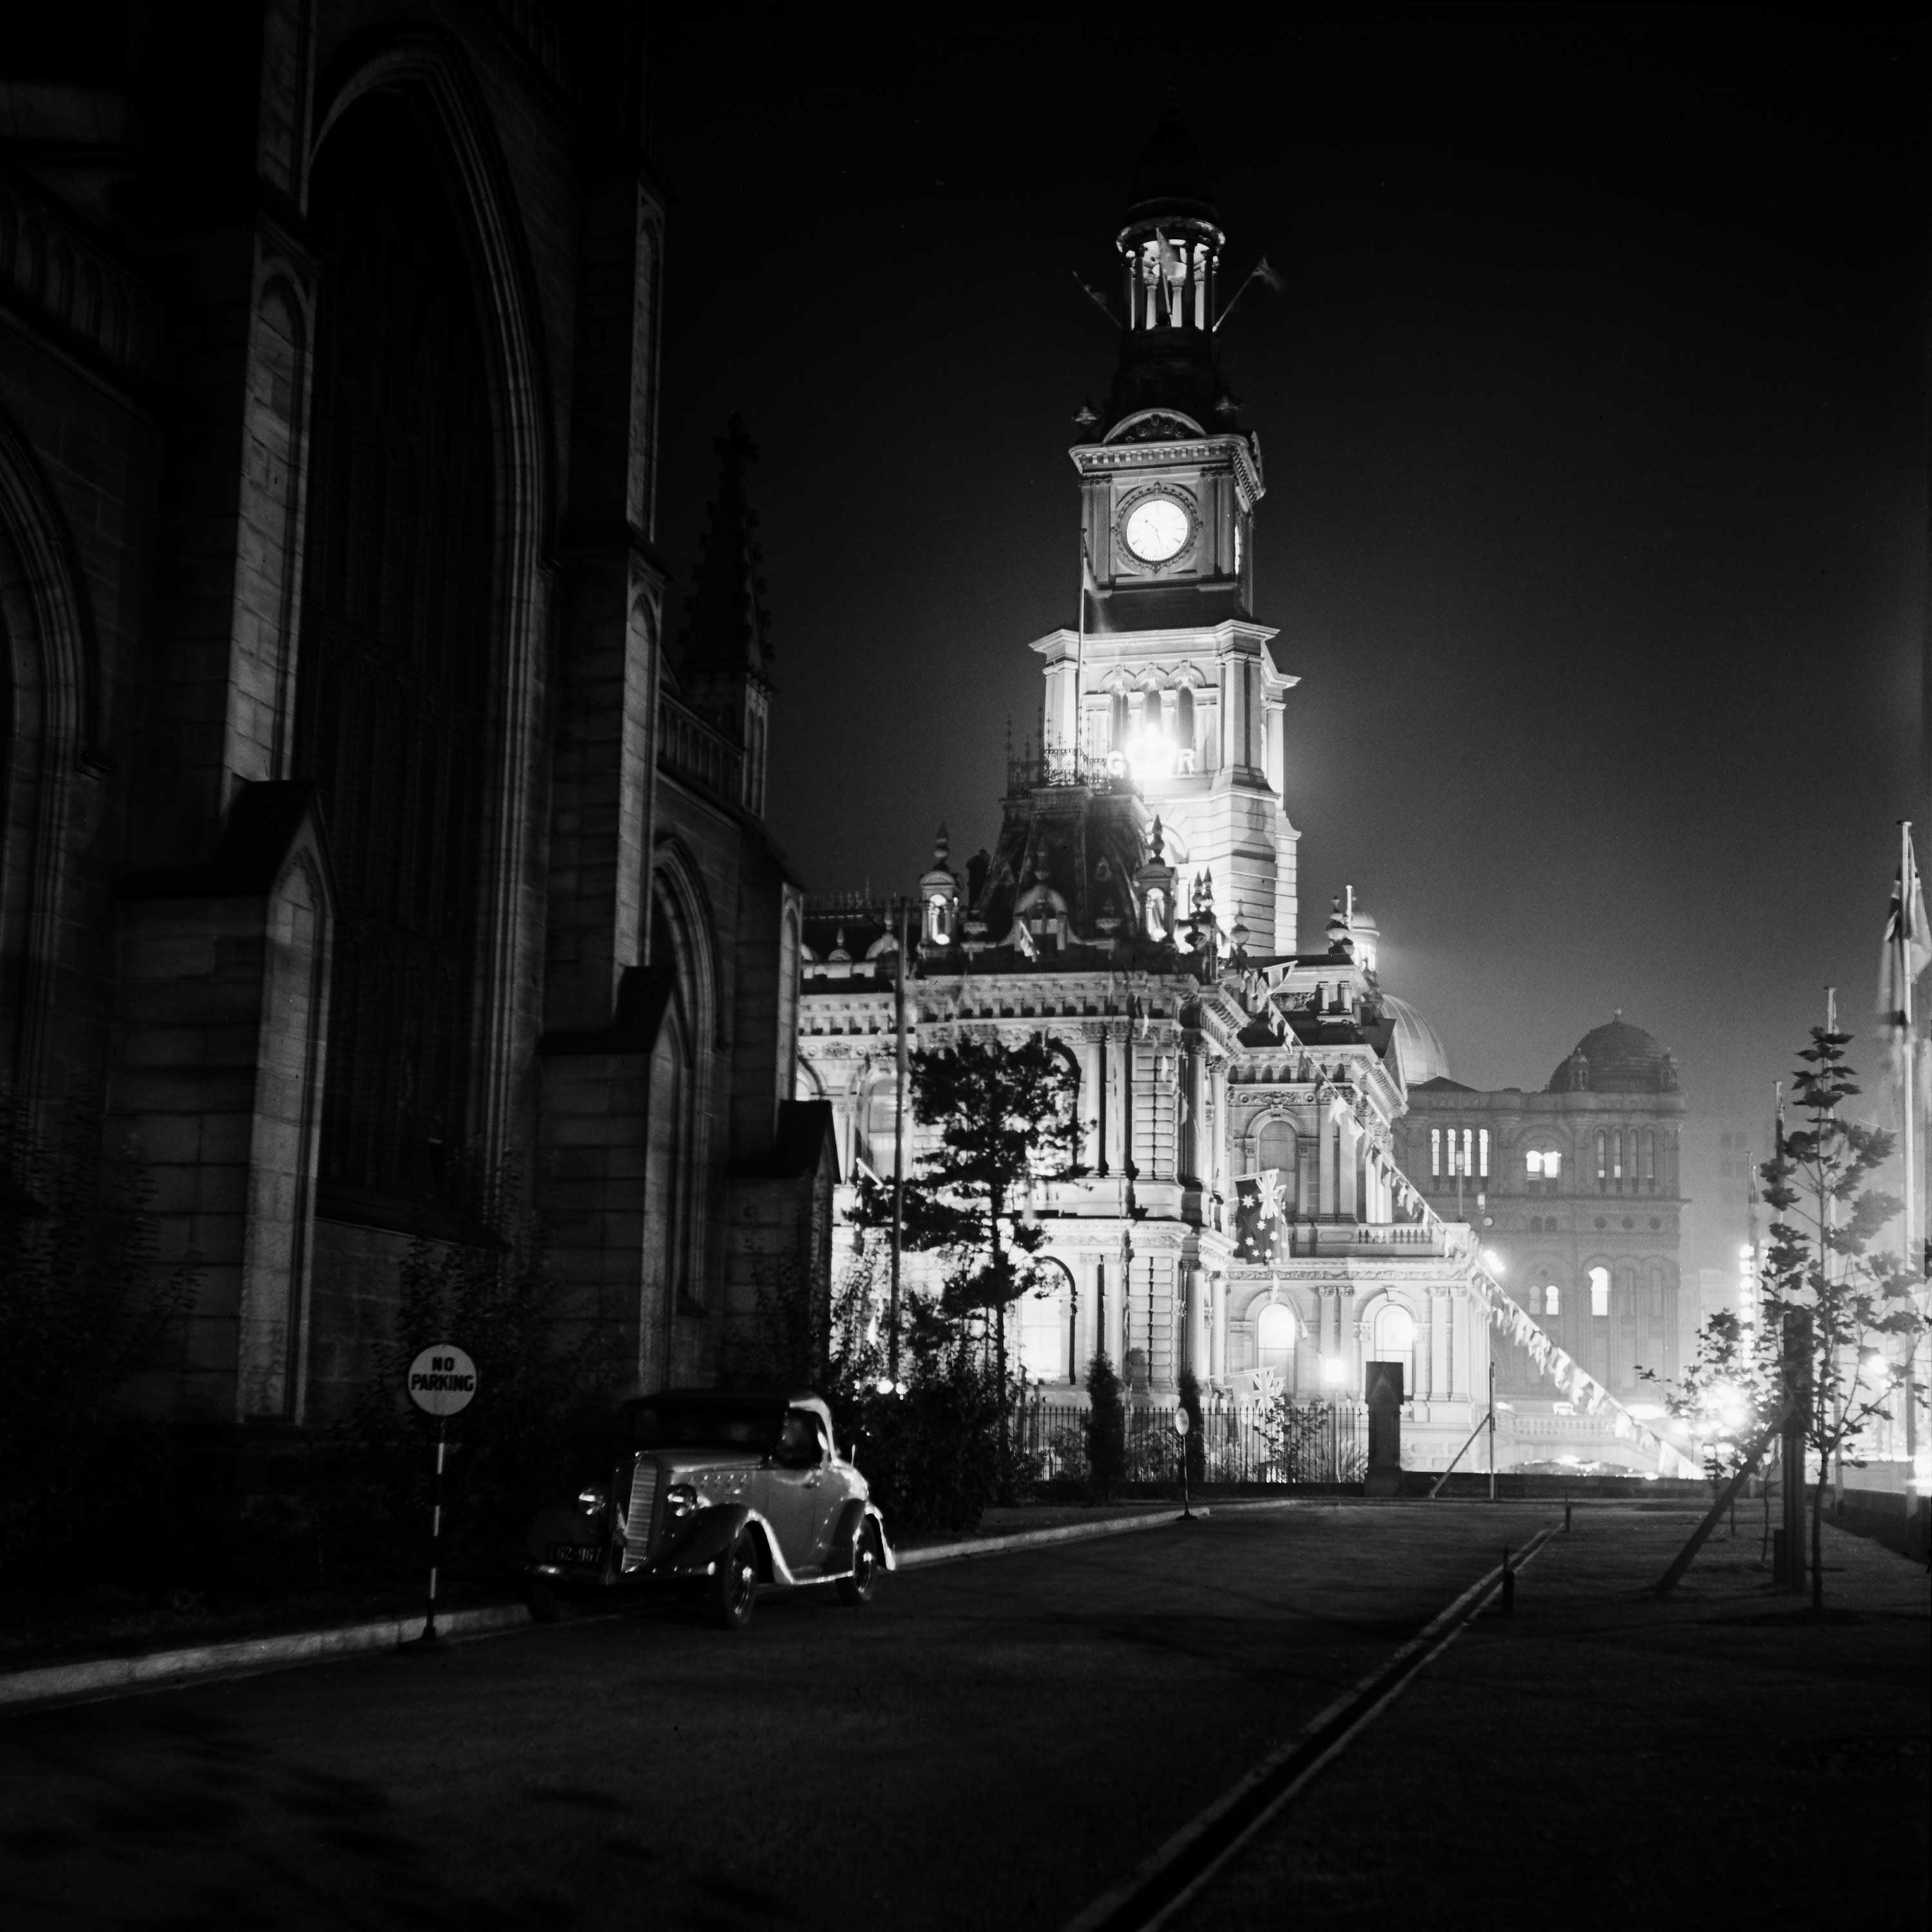 St Andrew's Cathedral and illuminated Town Hall, Coronation week, 11 May 1937. (Digital ID: a2391012)